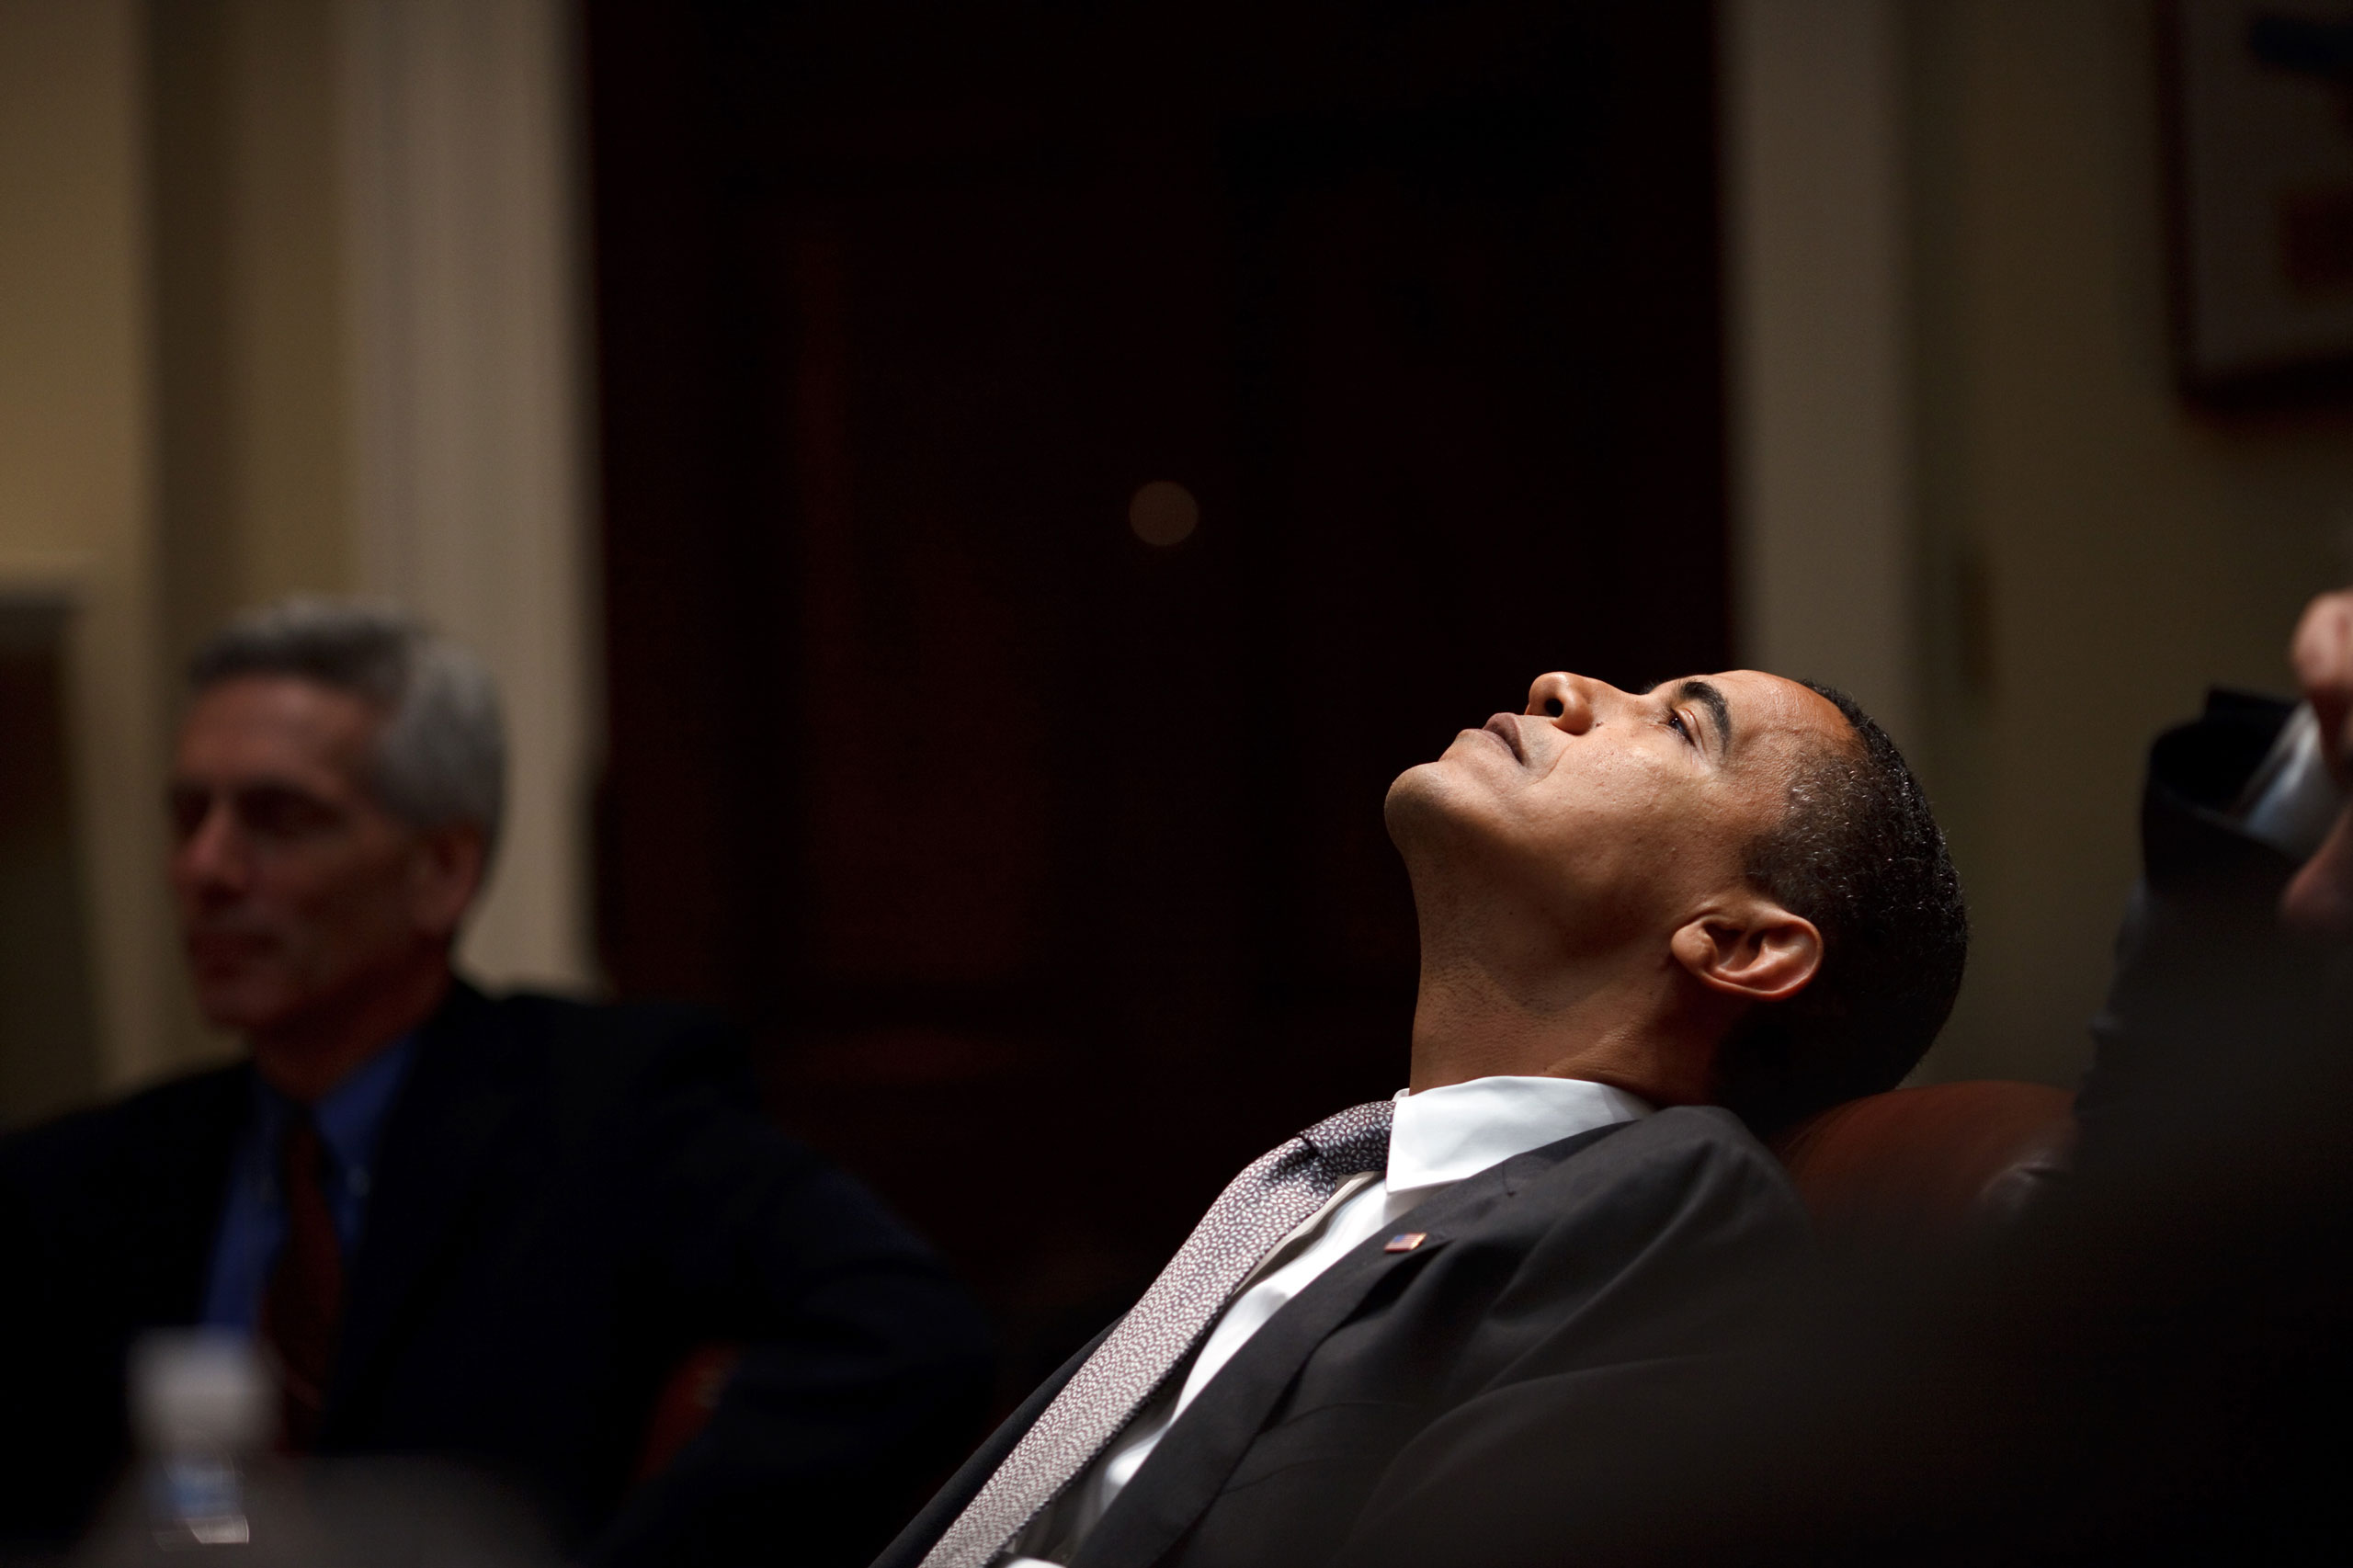 President Obama reflects during an economic meeting in the Roosevelt Room of the White House, Jan. 29, 2009.